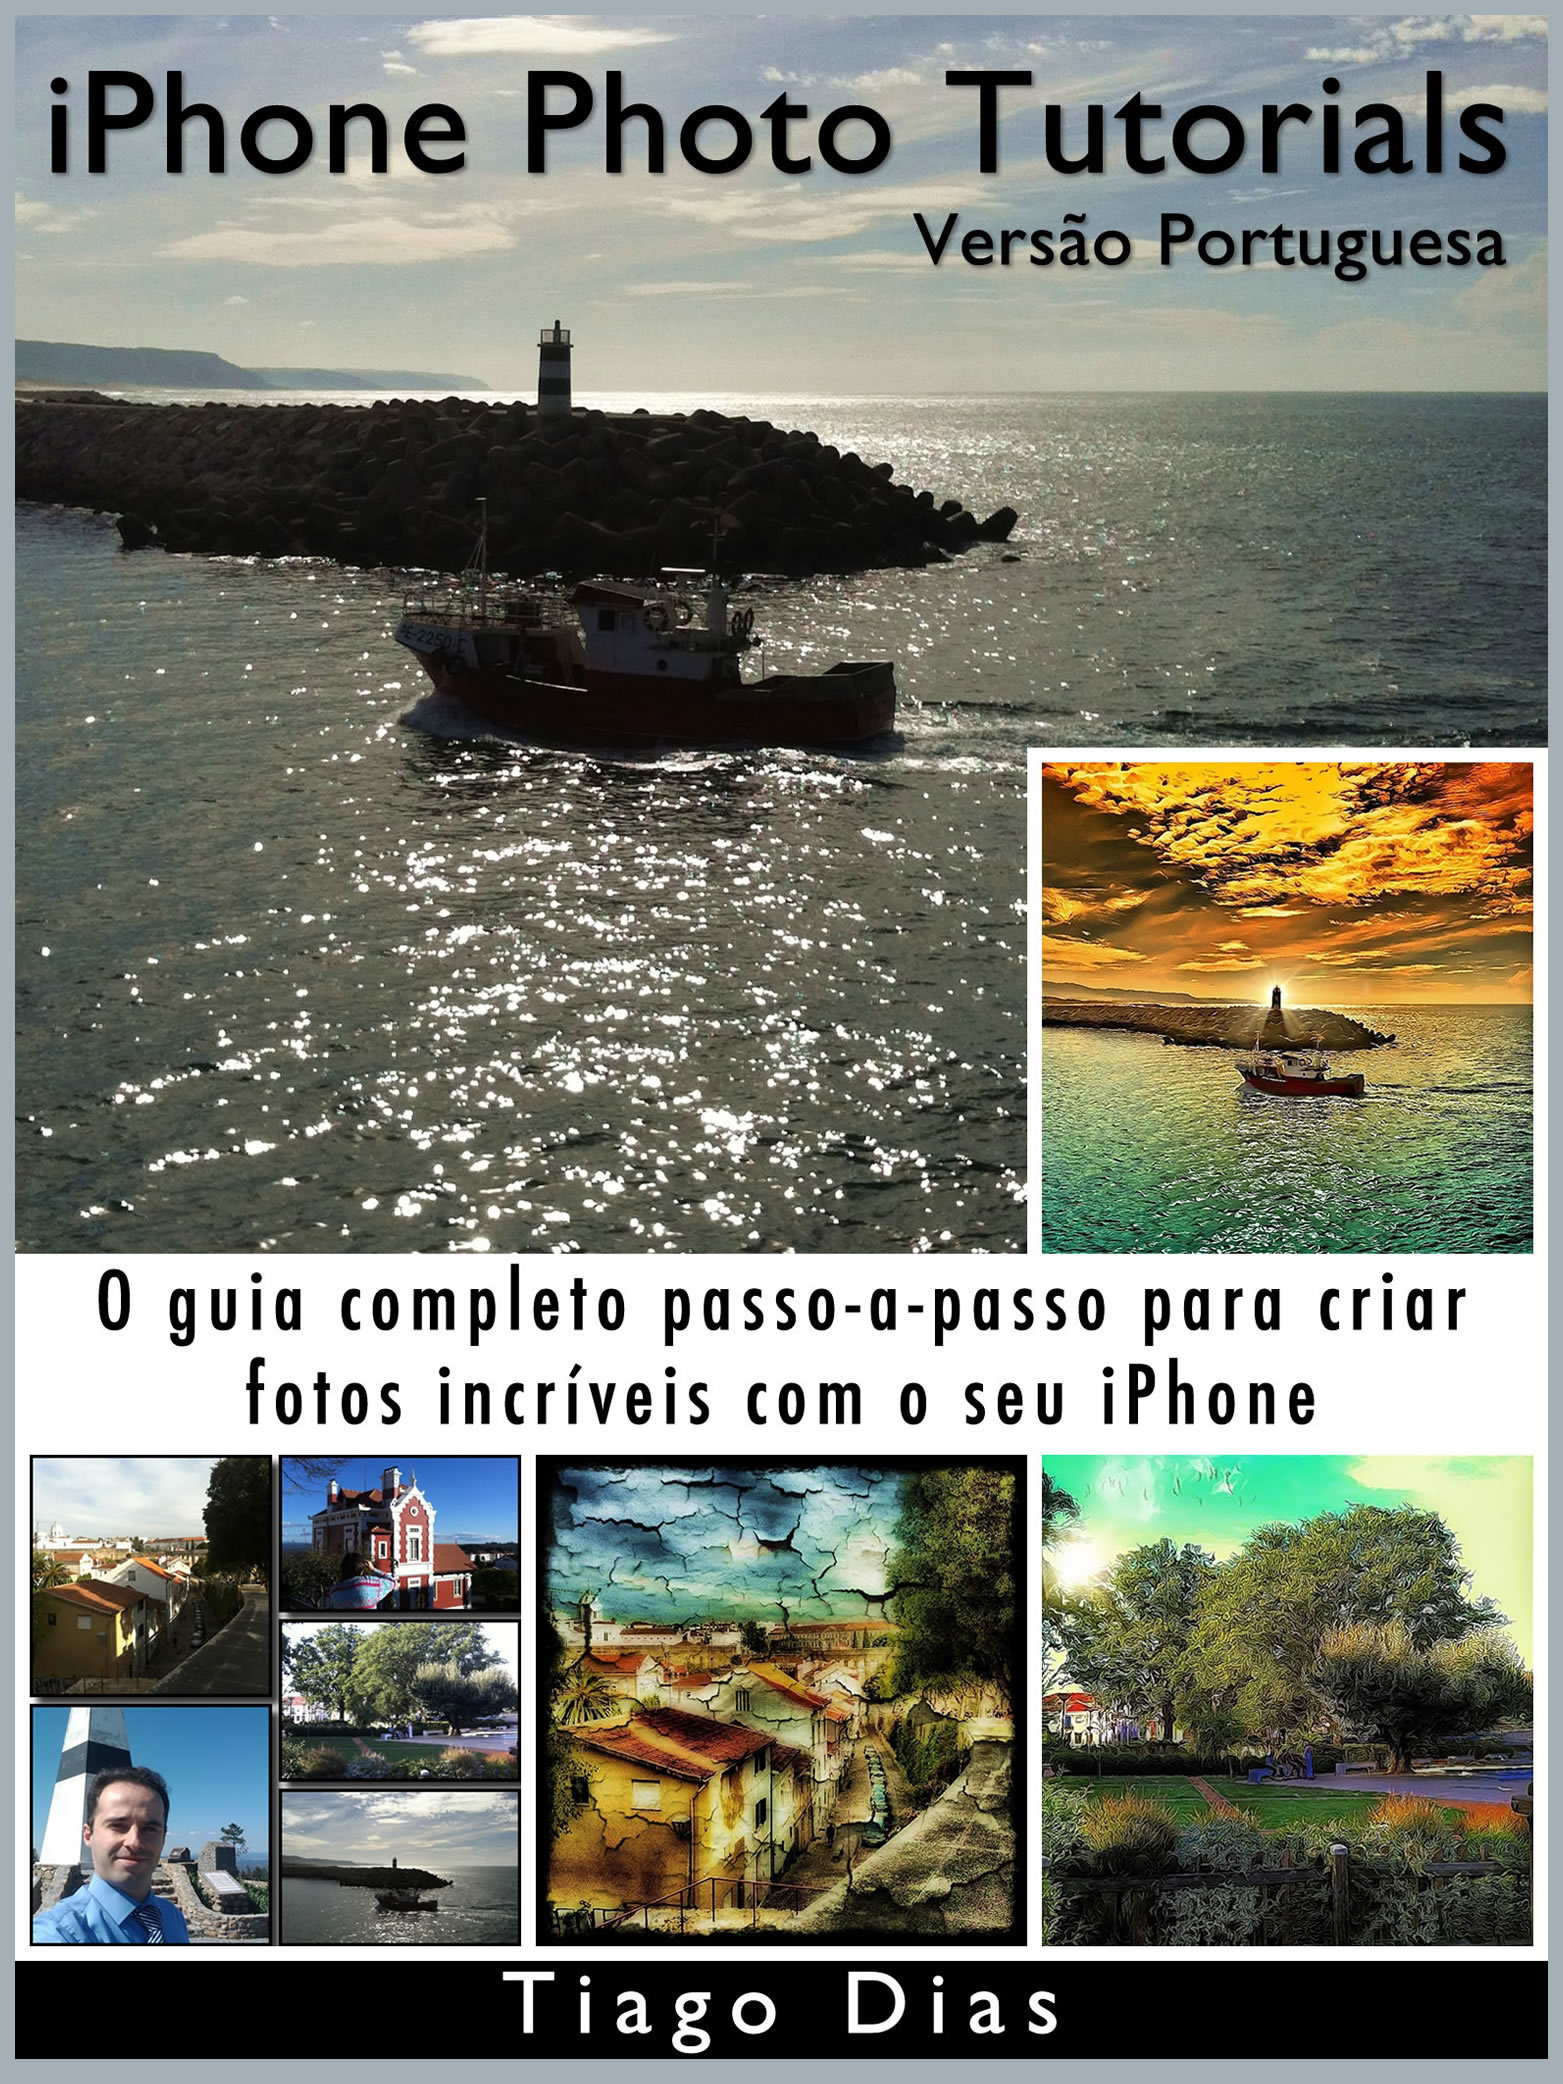 iPhone Photo Tutorials: Versão Portuguesa